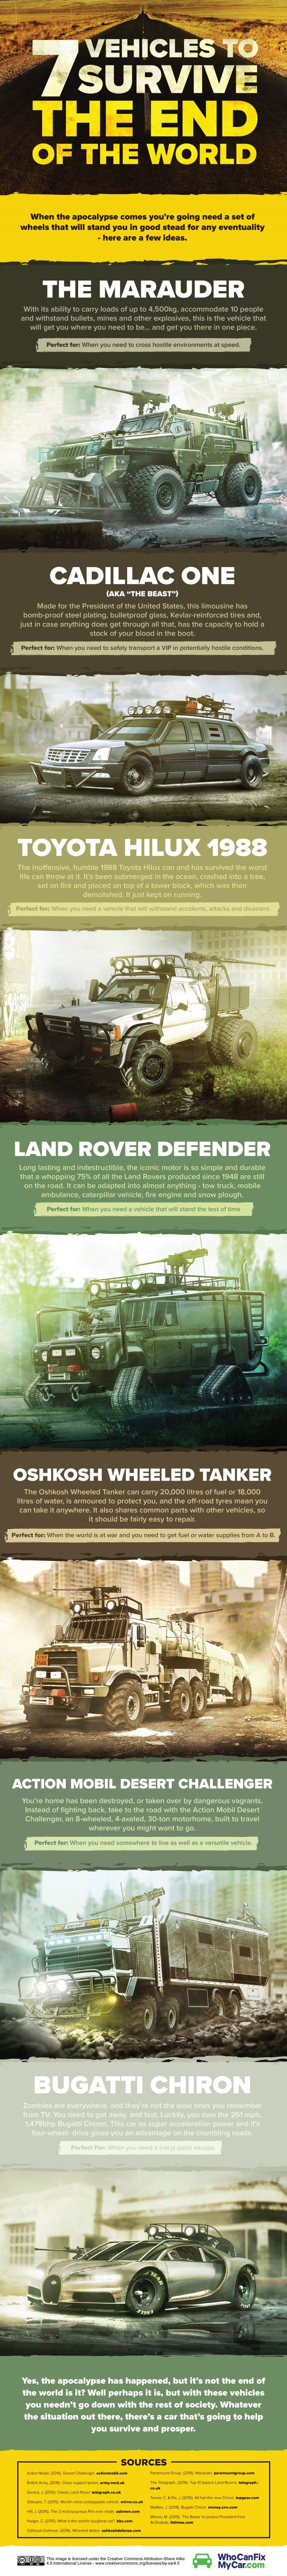 Survival vehicles | Survive the collapse with these awesome vehicles. http://www.outdoorsurvivalprepper.com/with-these-7-vehicles-you-will-survive-the-end-of-the-world/